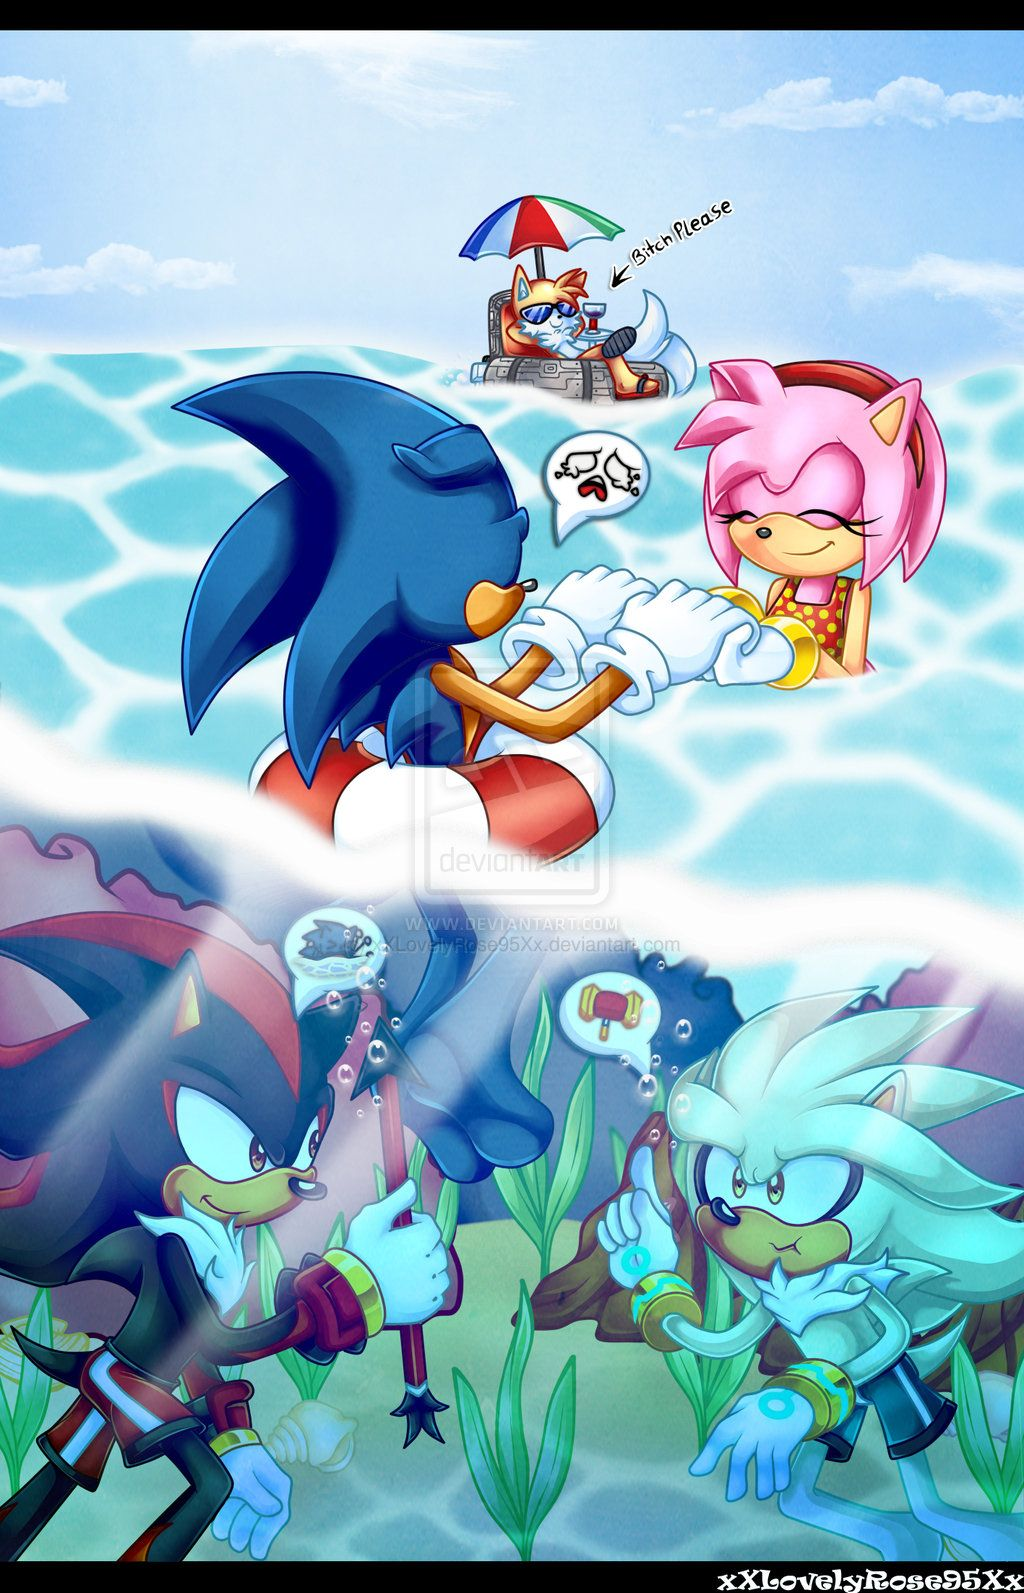 Me: *bumps into him underwater* Shadow: ??!!!!! O.o Me *signs 'sorry'* ^^' Silver:...?